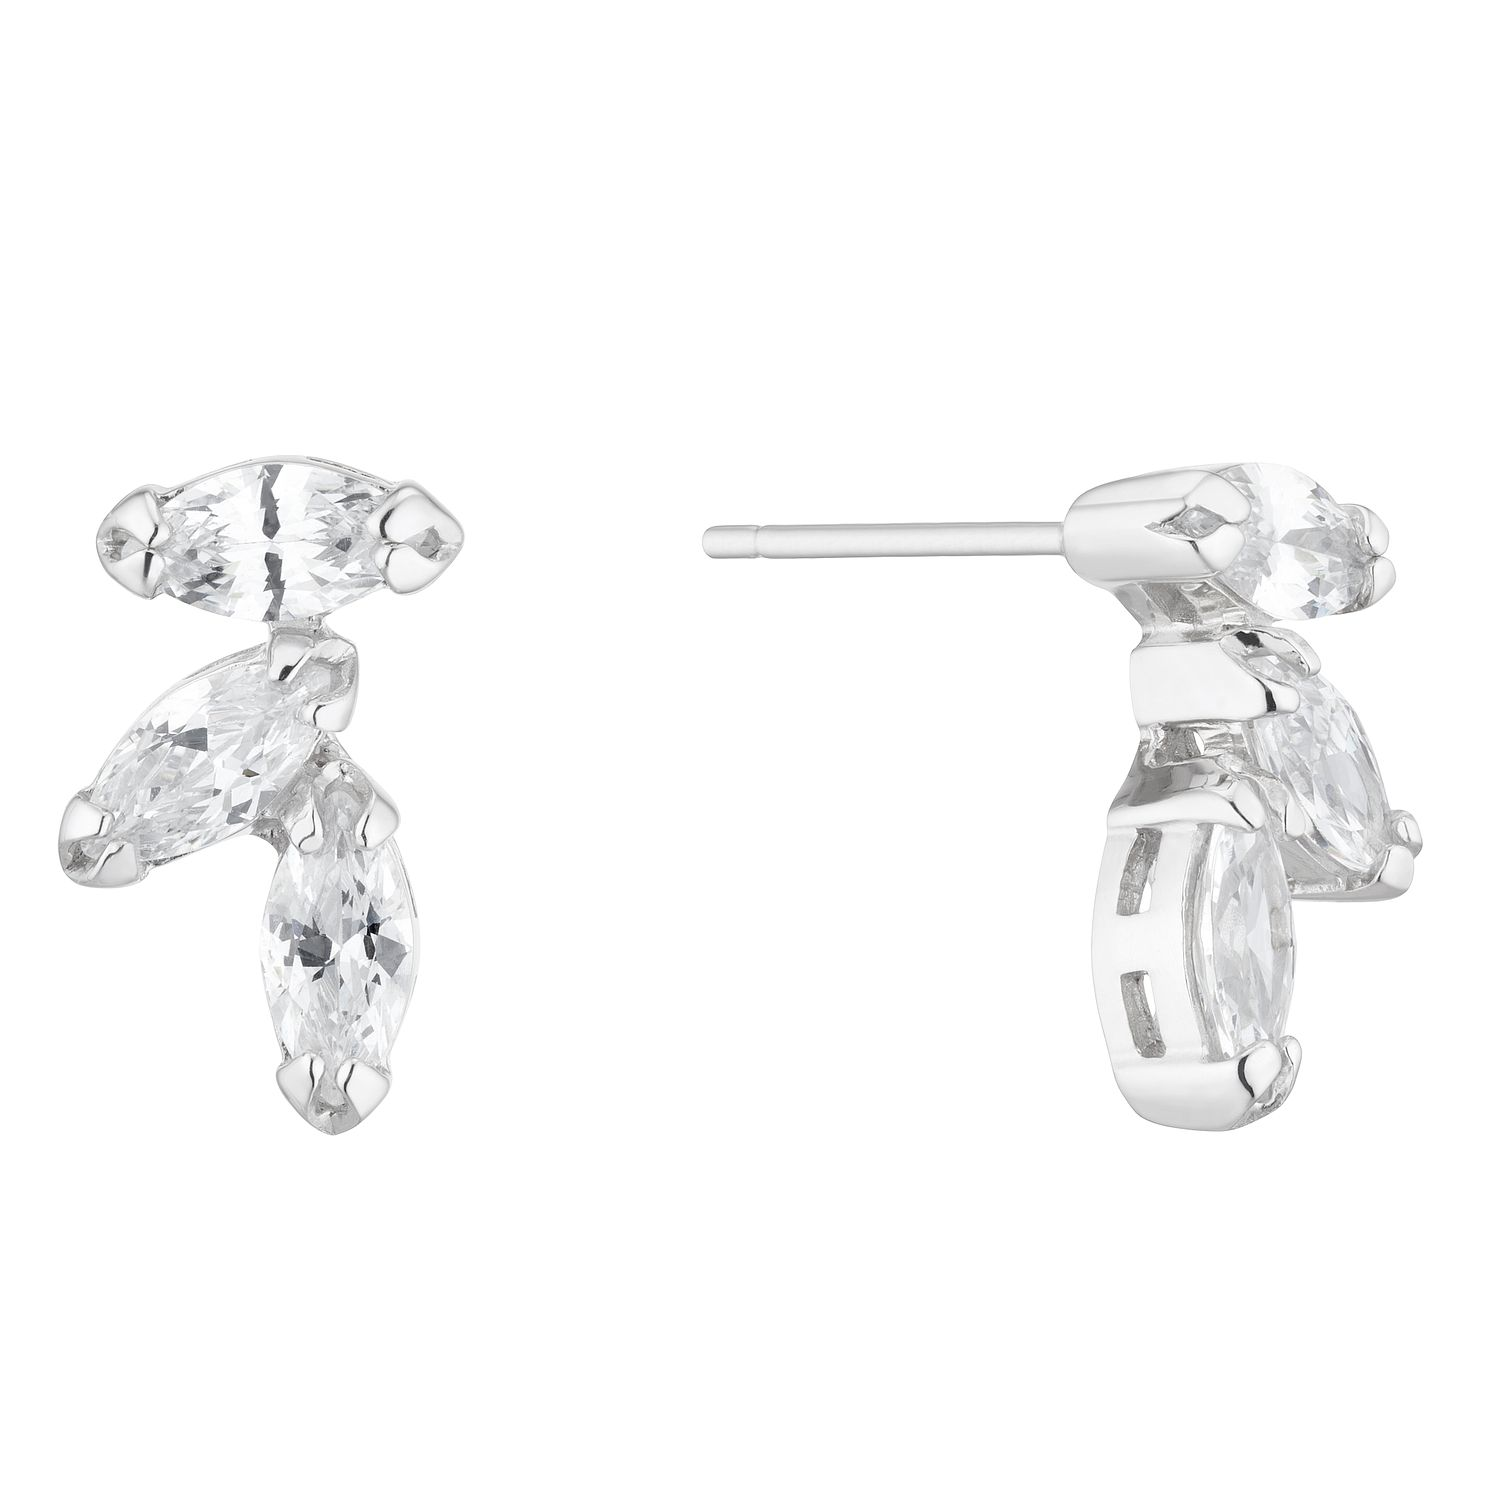 Silver Marquise Trio Cubic Zirconia Stud Earrings - Product number 5526558